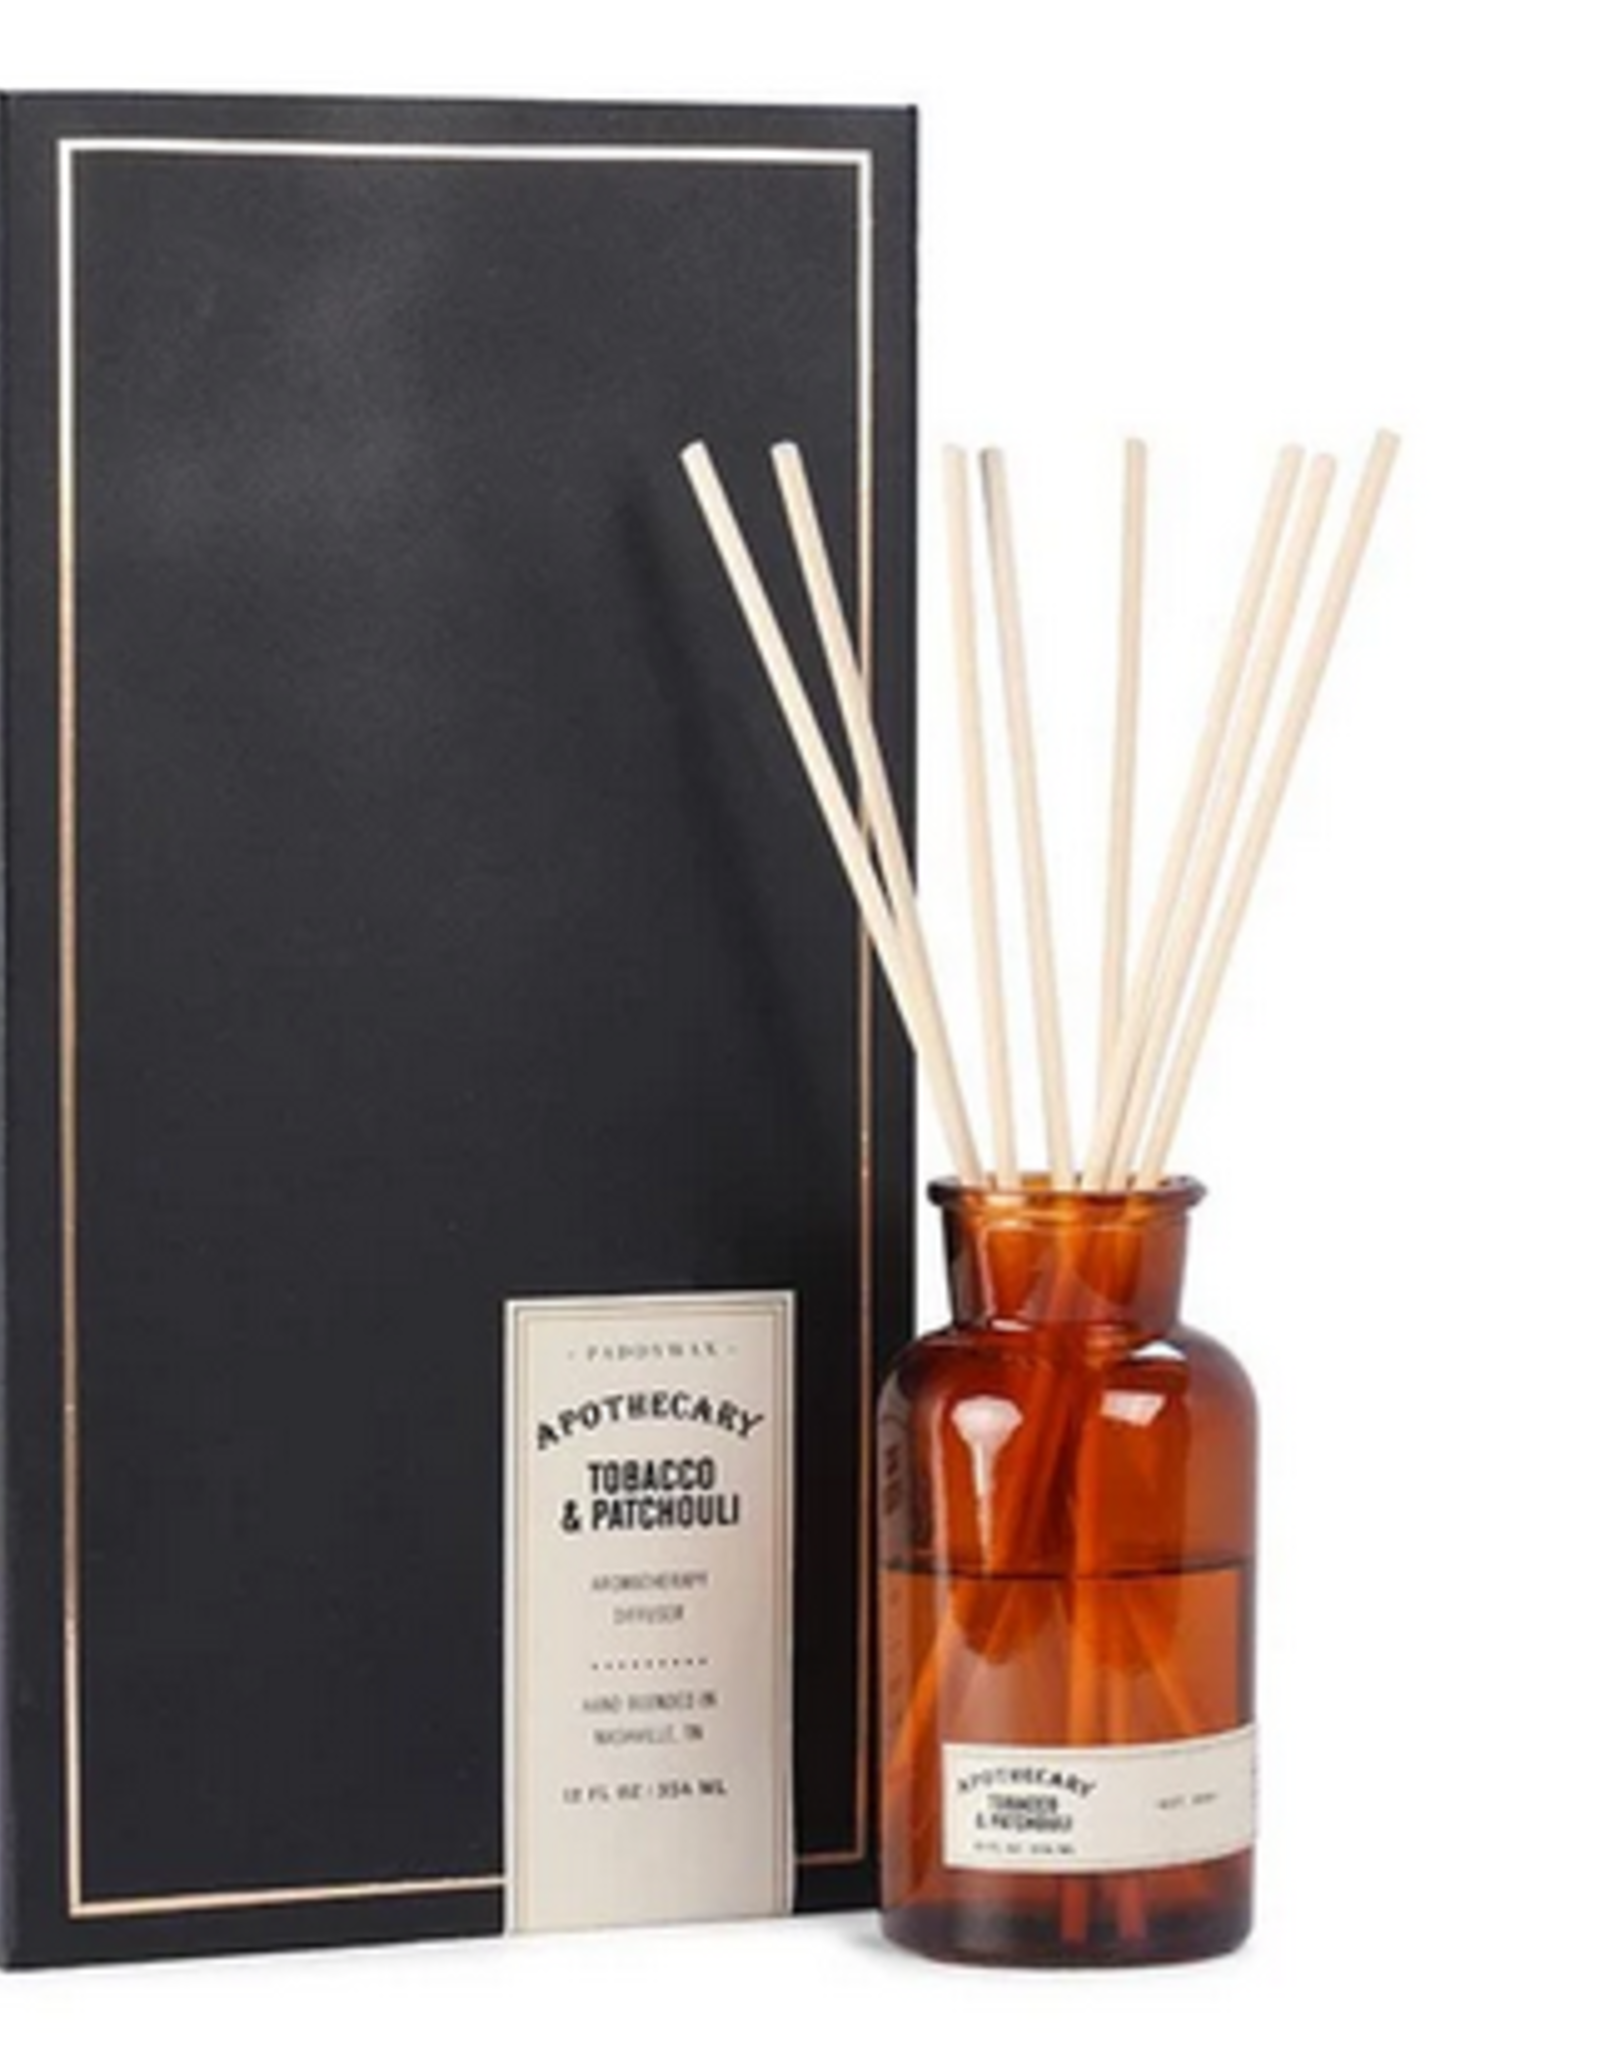 Paddywax Apothecary Boxed Diffuser